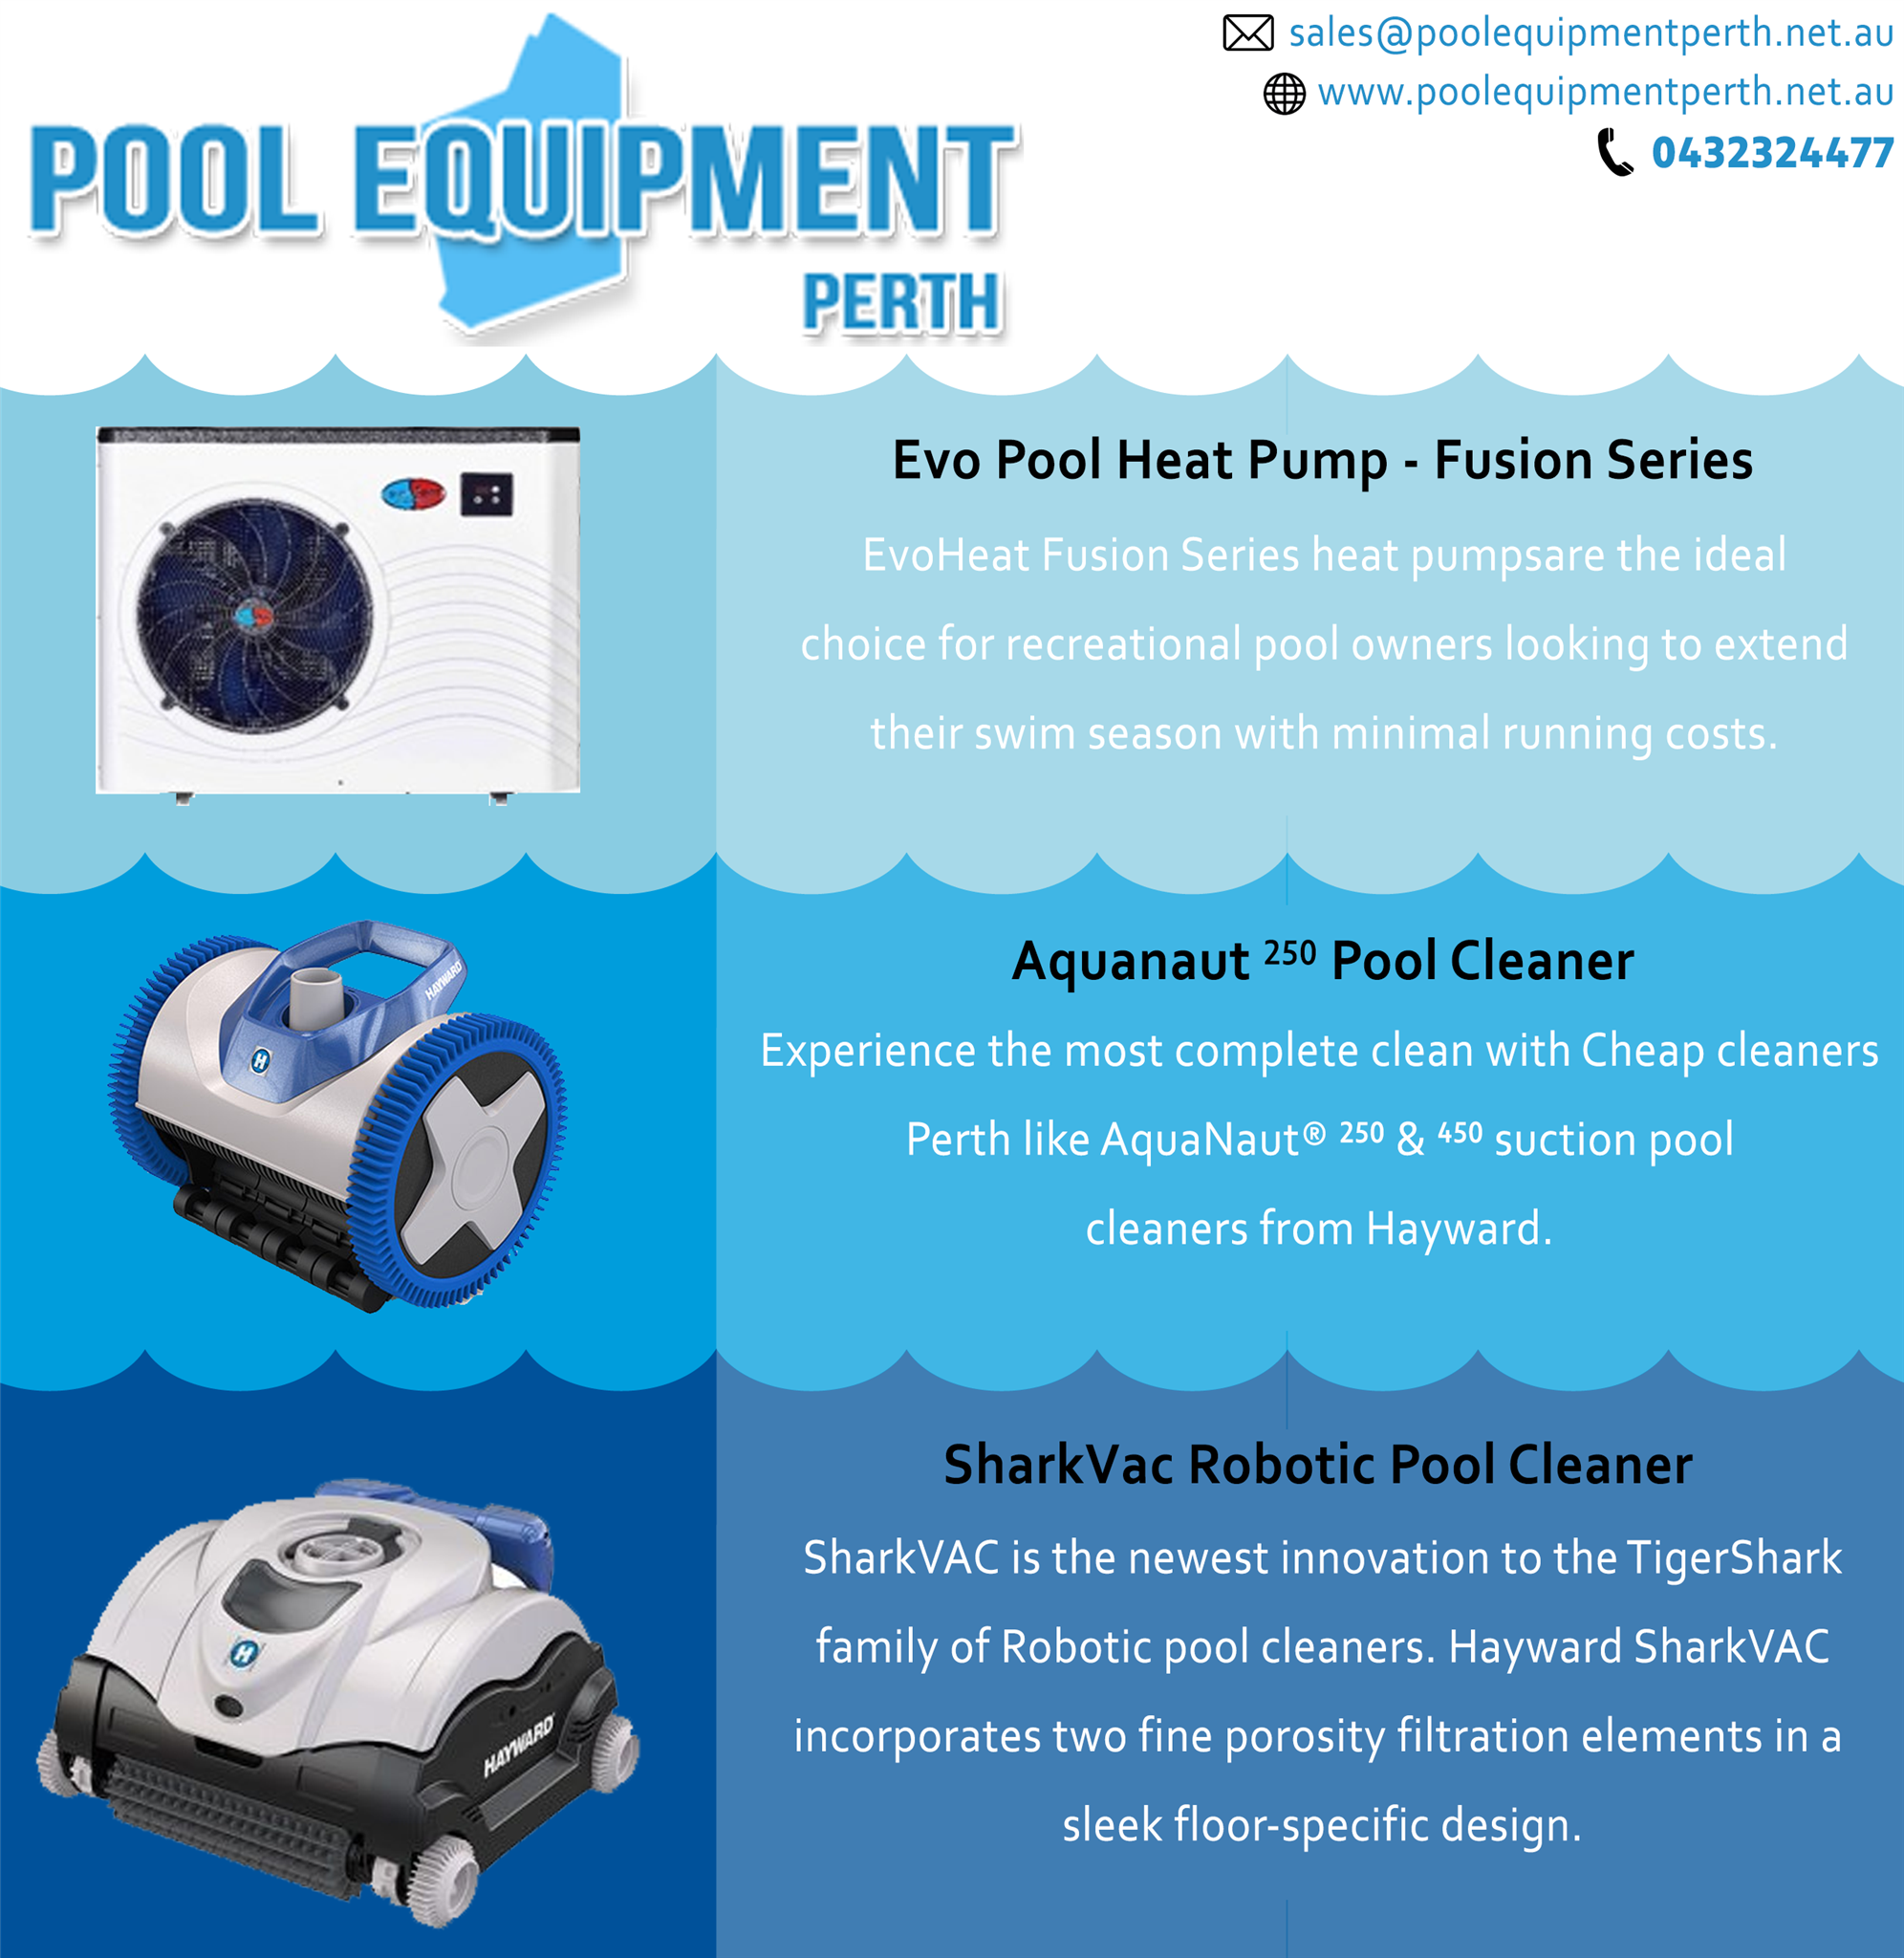 Swimming Pool Filter Pump Price Call Us On 0432324477 To Help You Choose The Right Swimming Pool